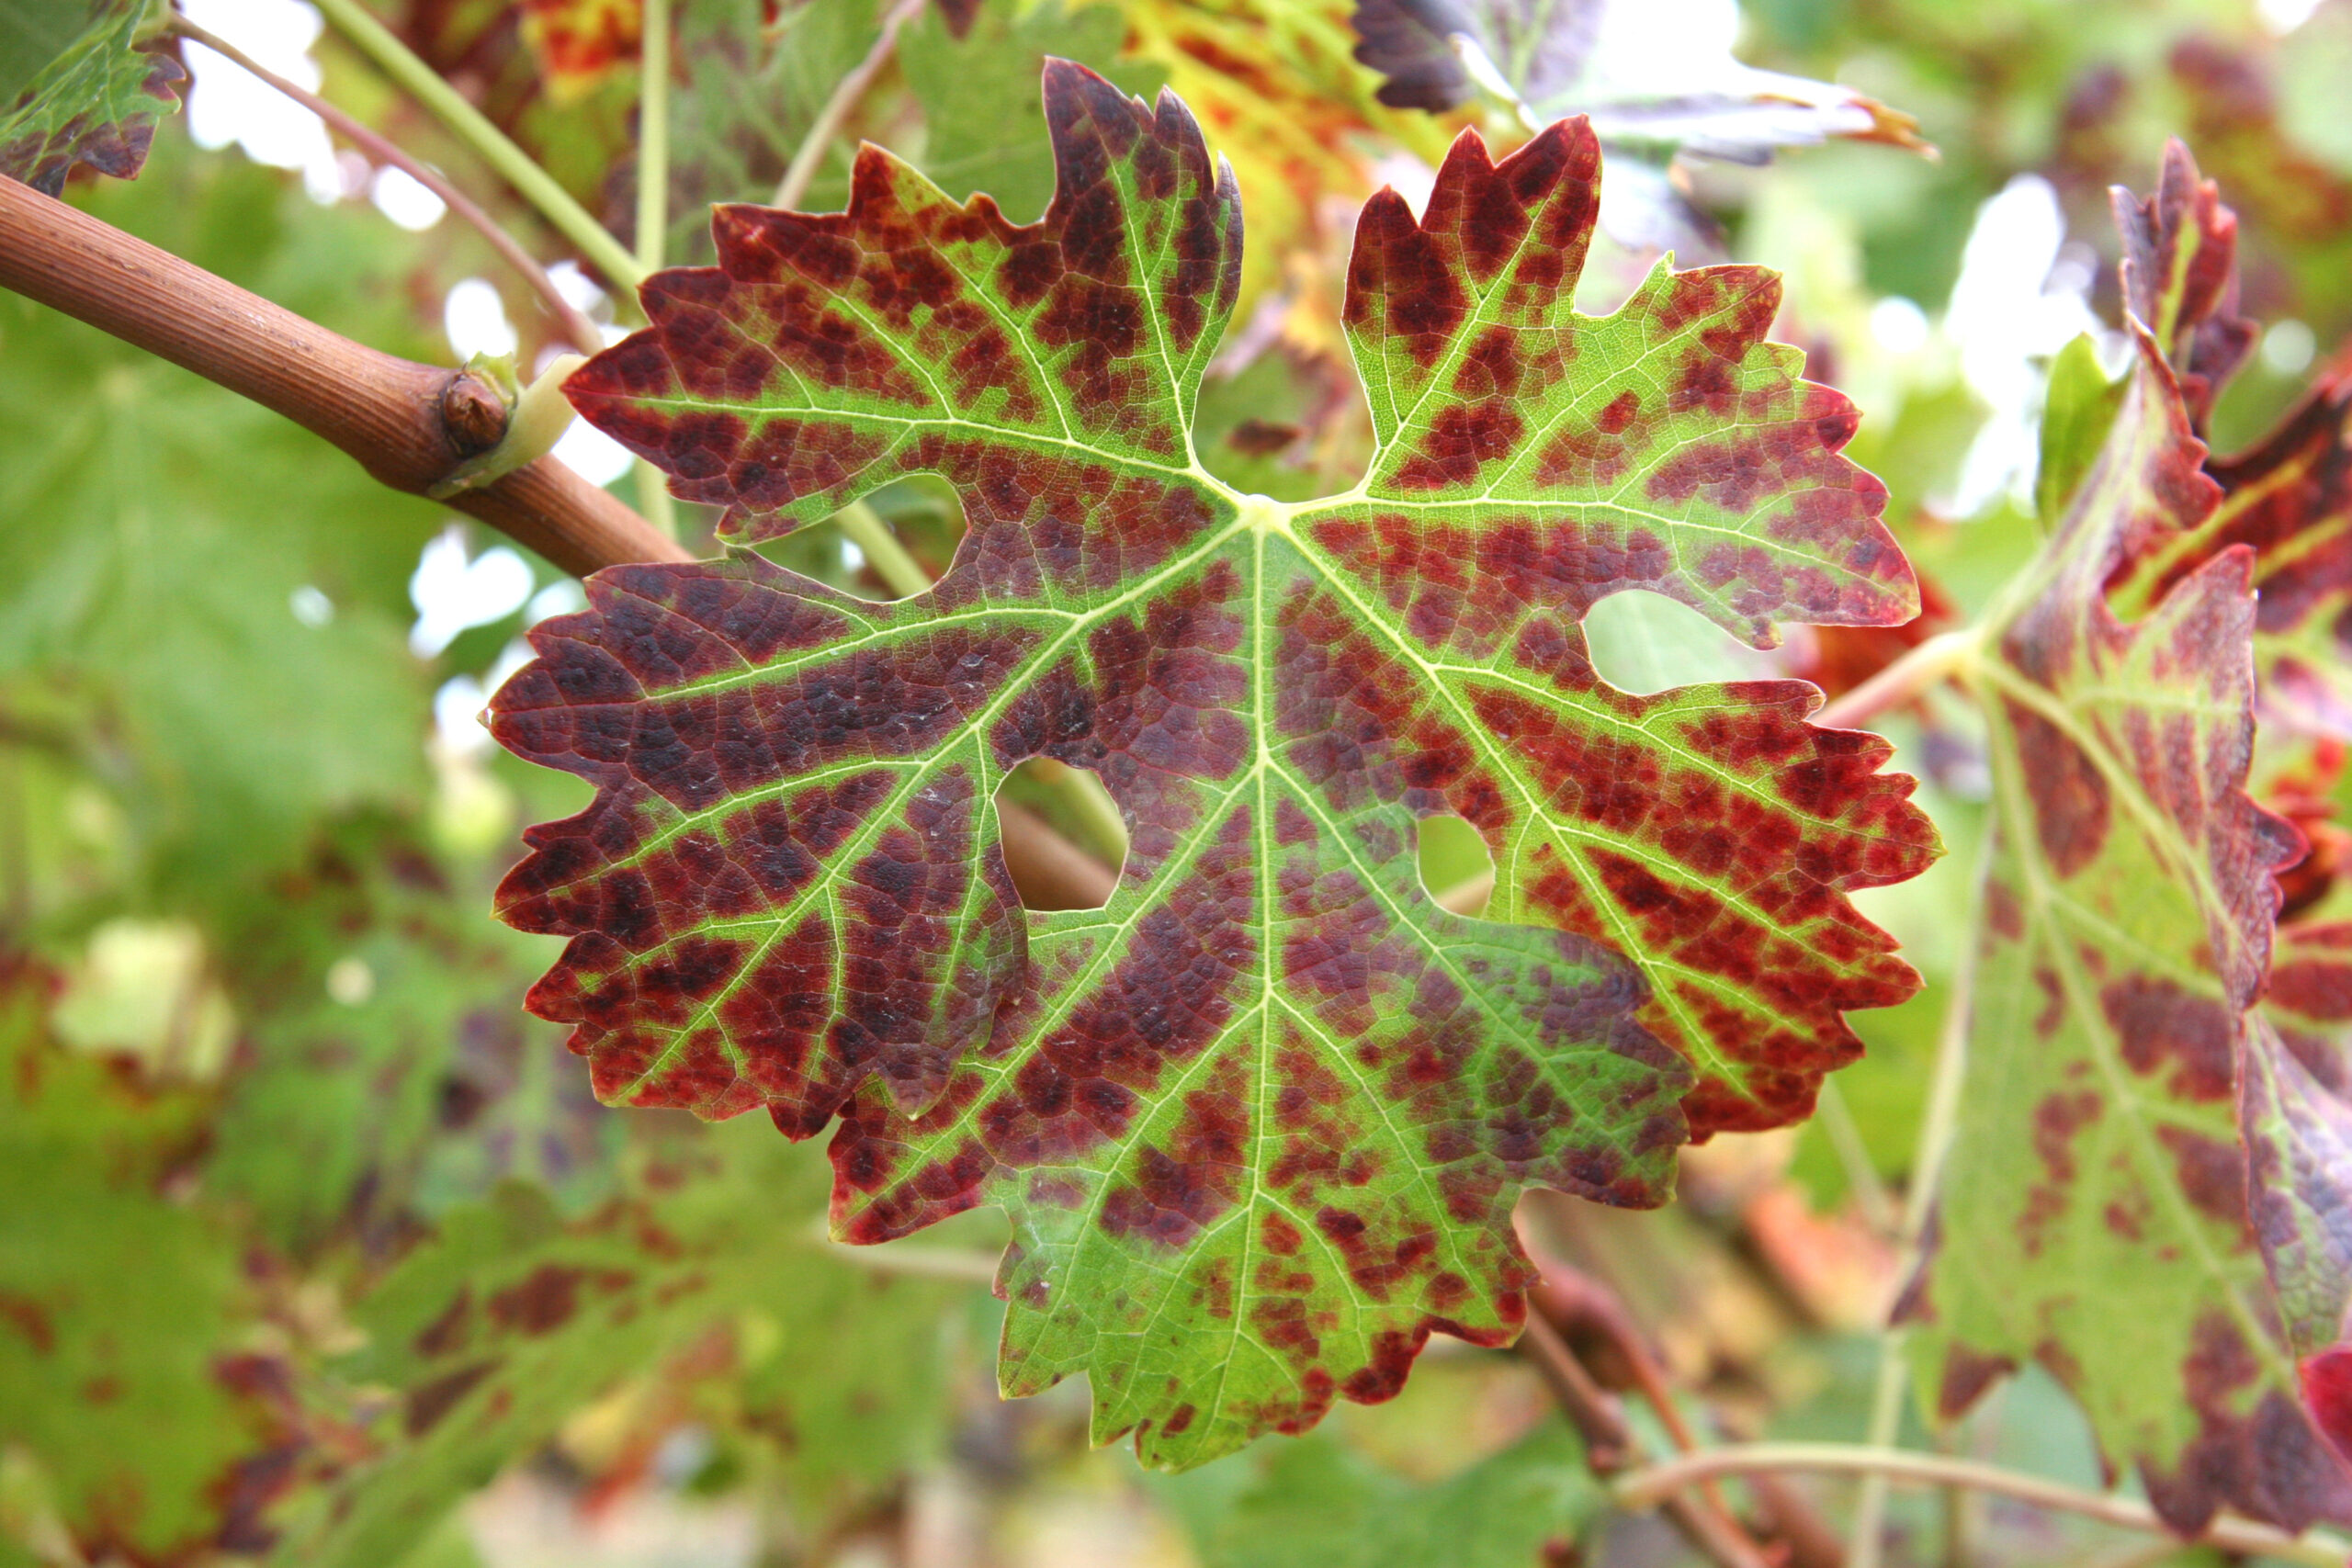 A grape leaf with blotchy red discoloration in front of other leaves with the same coloration.